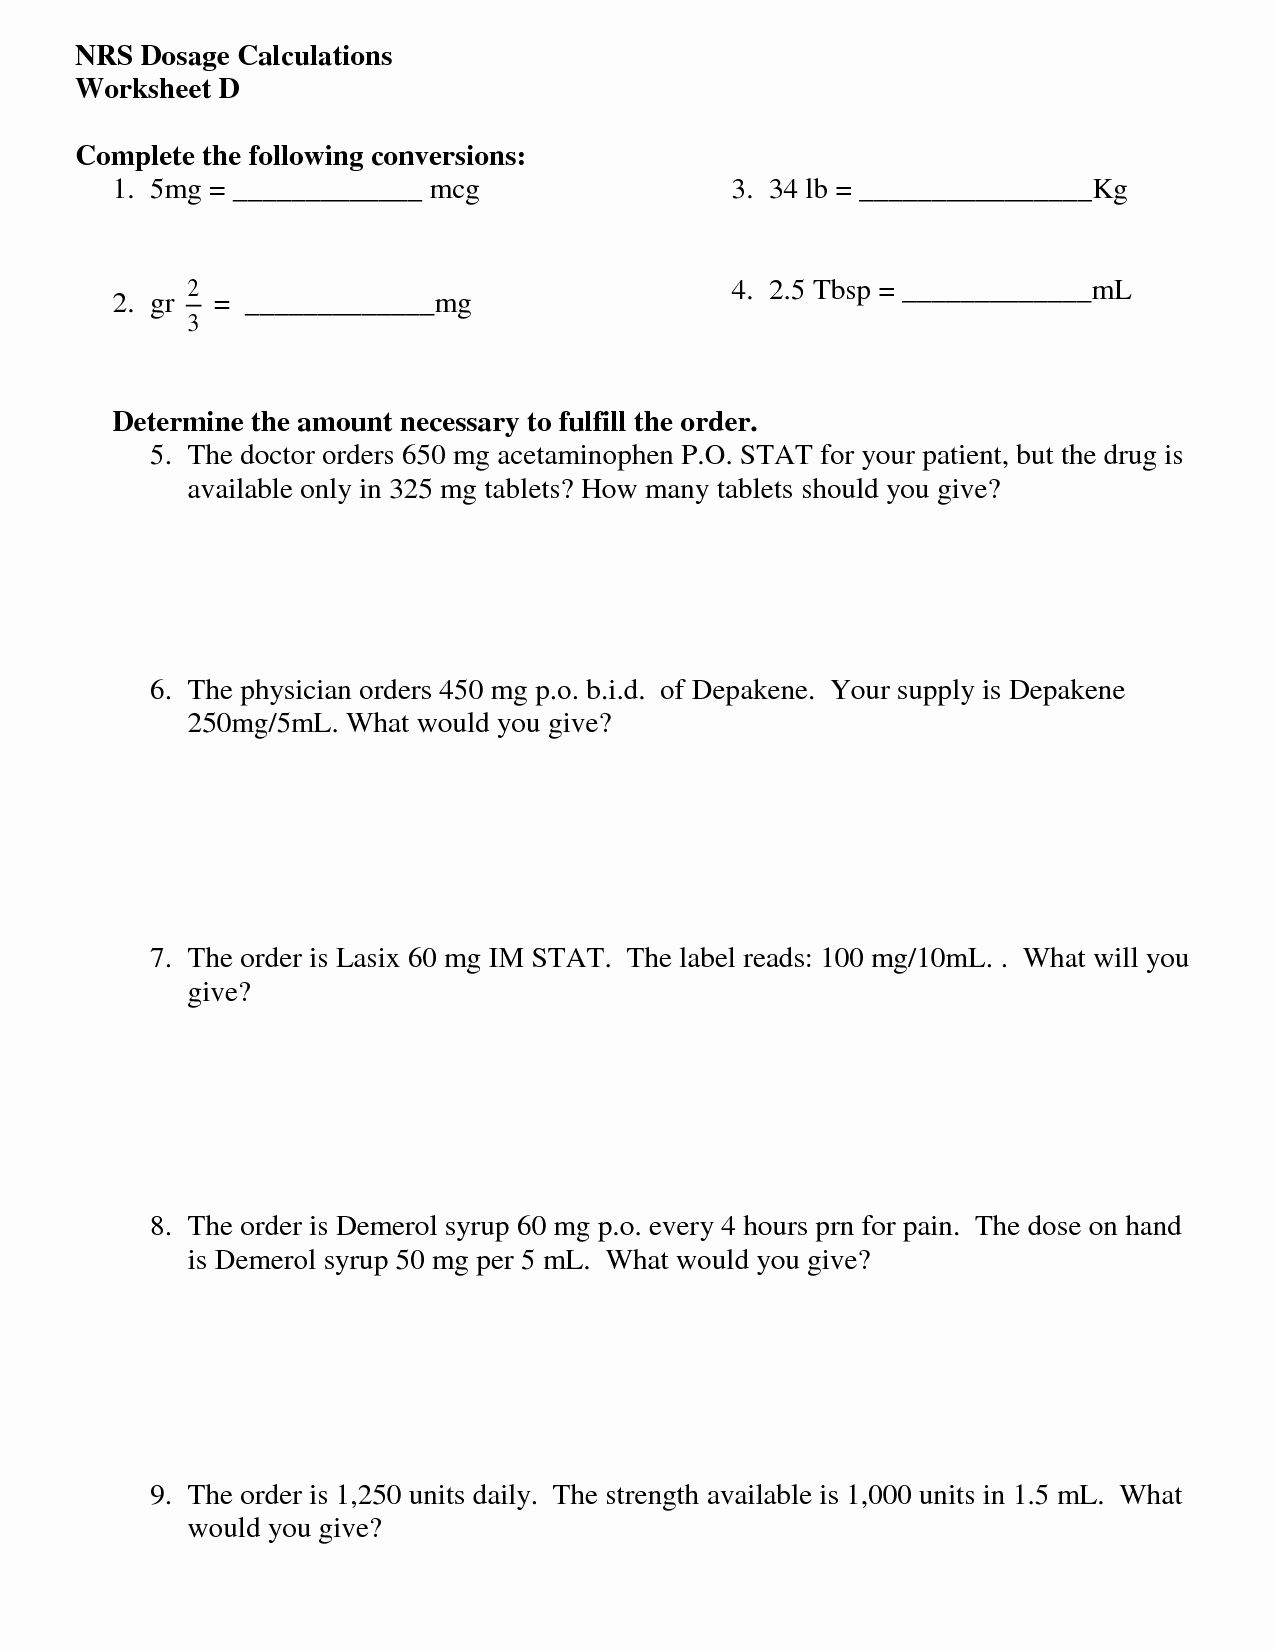 37 Clever Math Practice Worksheets Design With Images